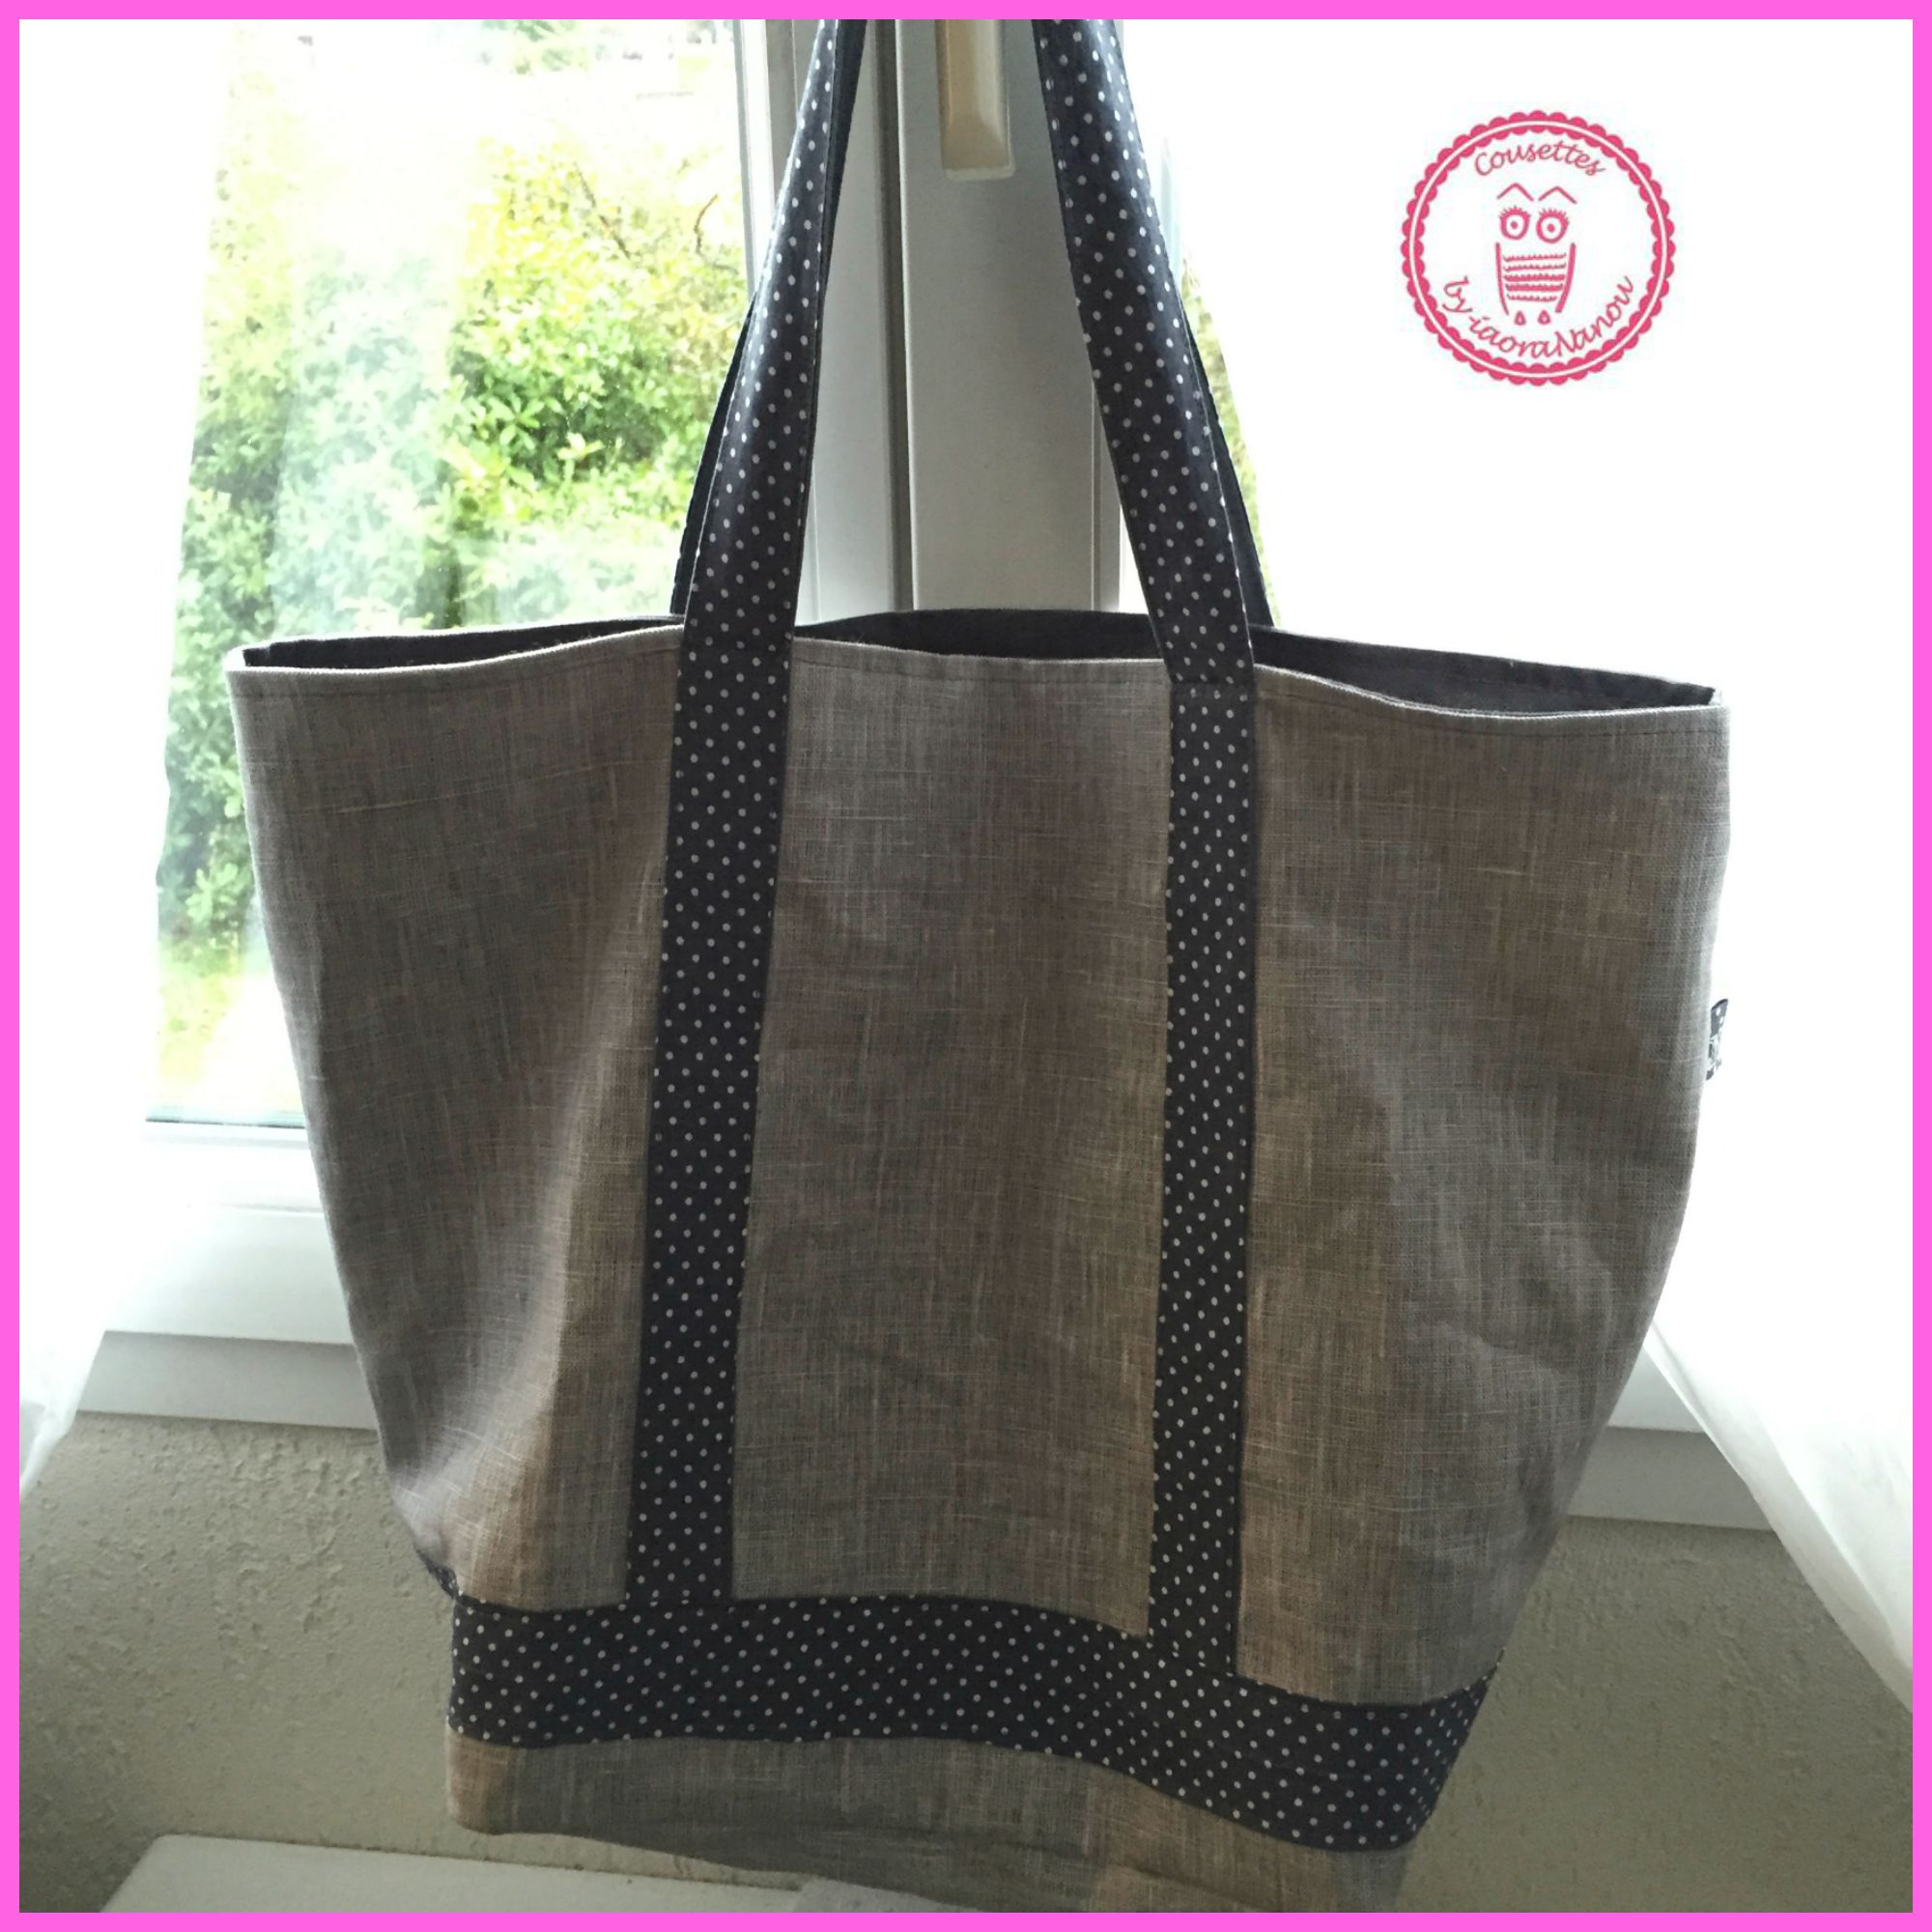 Sac Cabas Style Vb Pop Couture